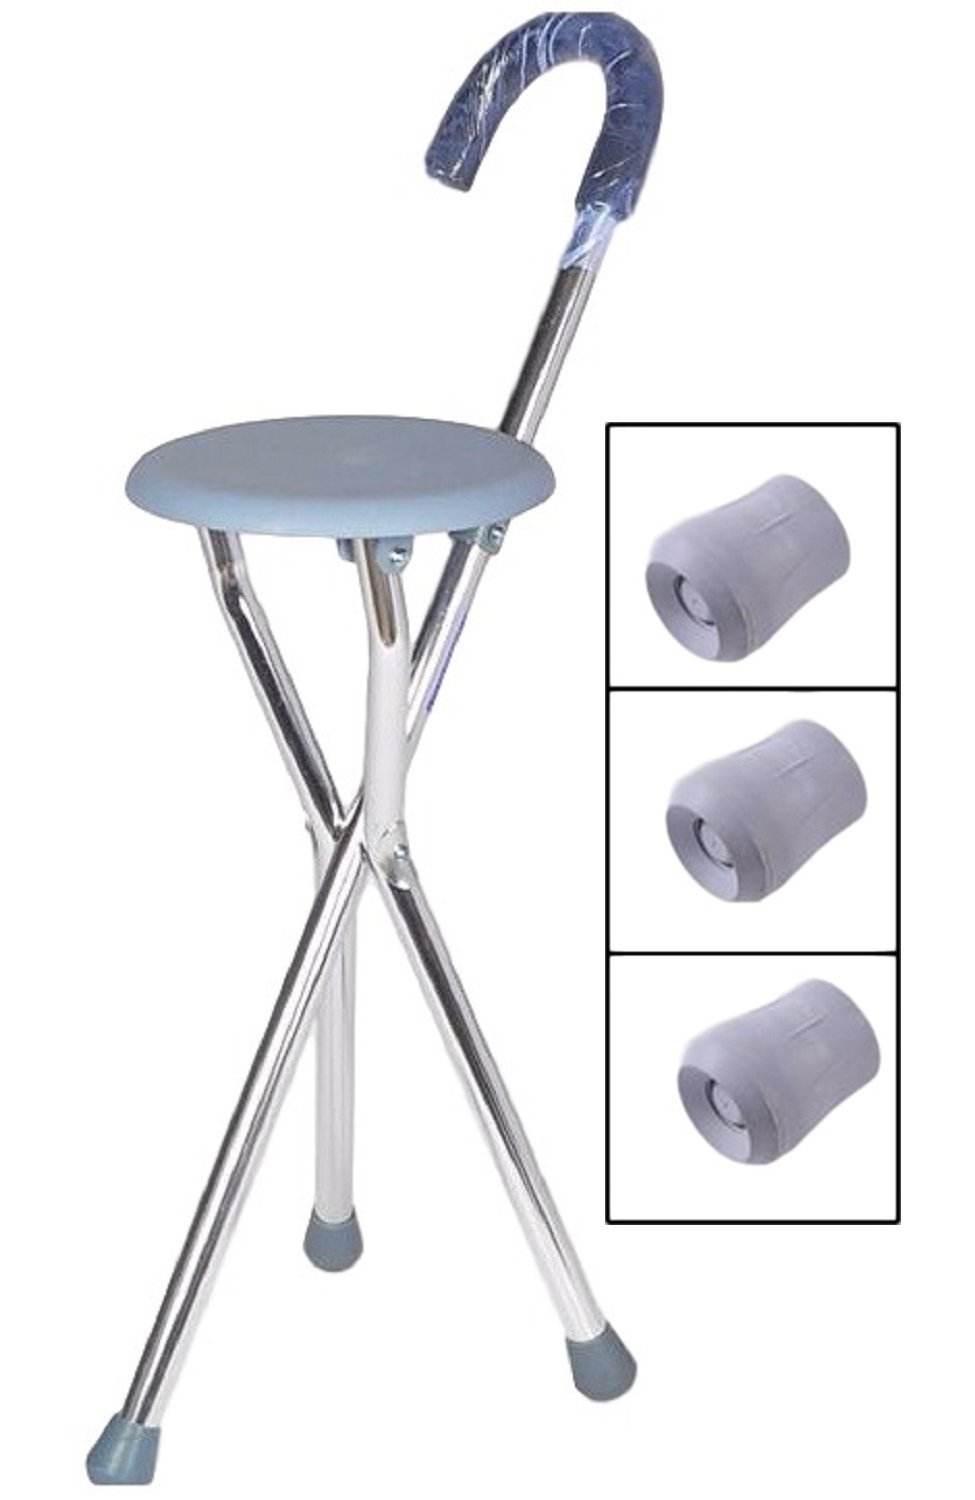 Tremendous Cheap Cane Chair Find Cane Chair Deals On Line At Alibaba Com Pabps2019 Chair Design Images Pabps2019Com